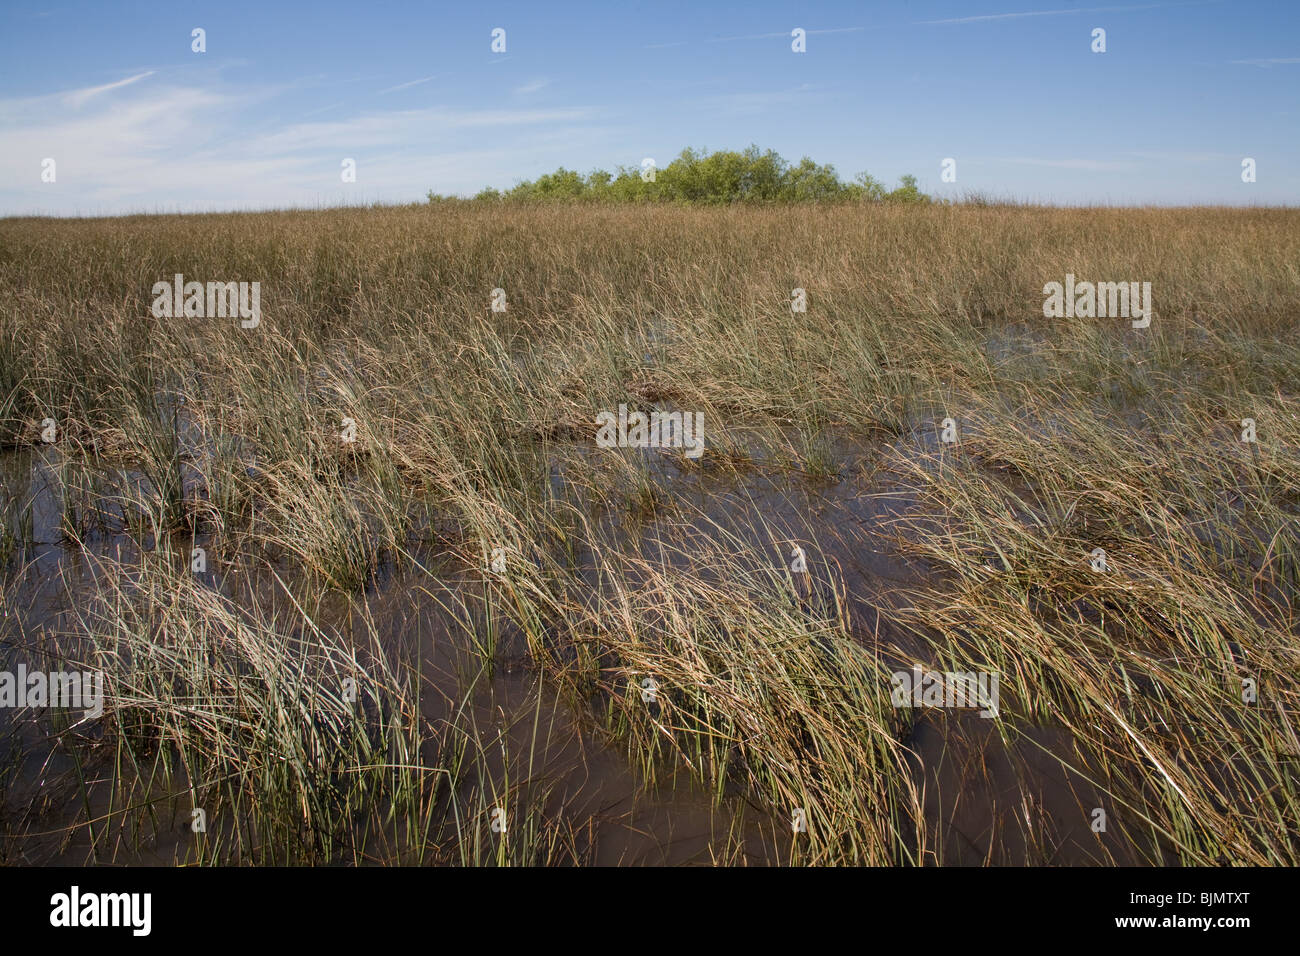 The River of Grass, Sawgrass, in the Everglades National Park, Miami Florida USA - Stock Image